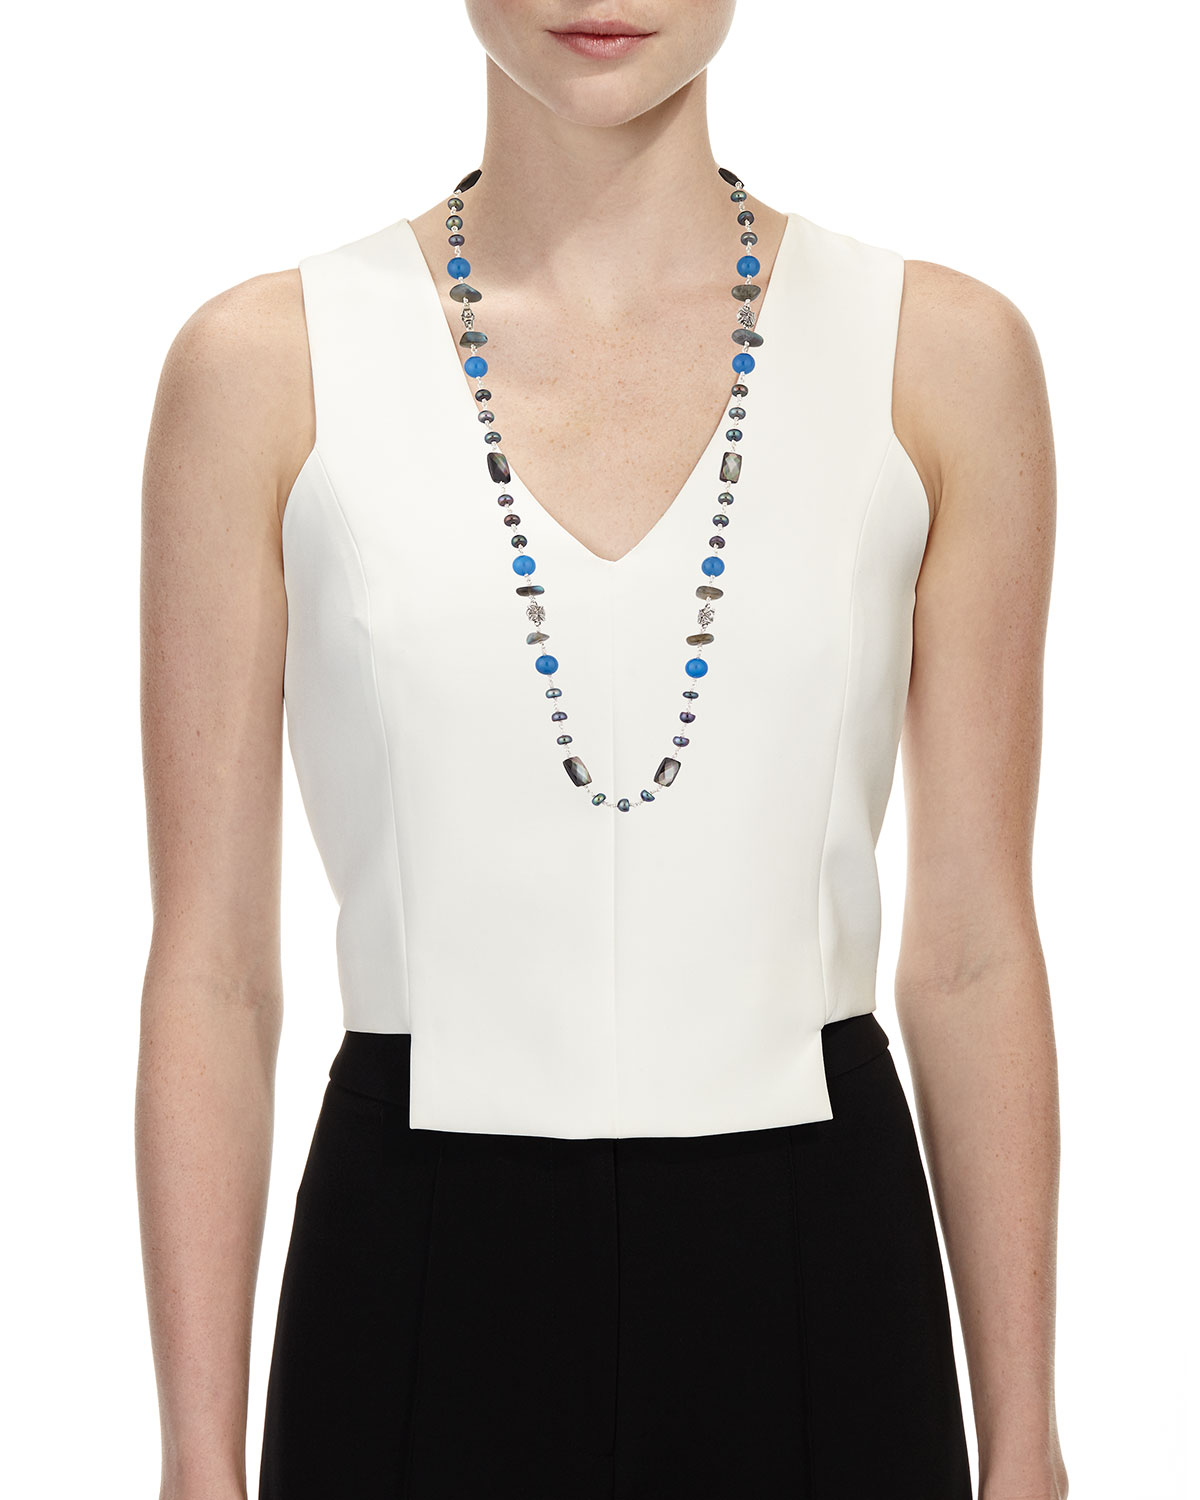 Stephen Dweck Pearl & Blue Agate Beaded Station Necklace, 32